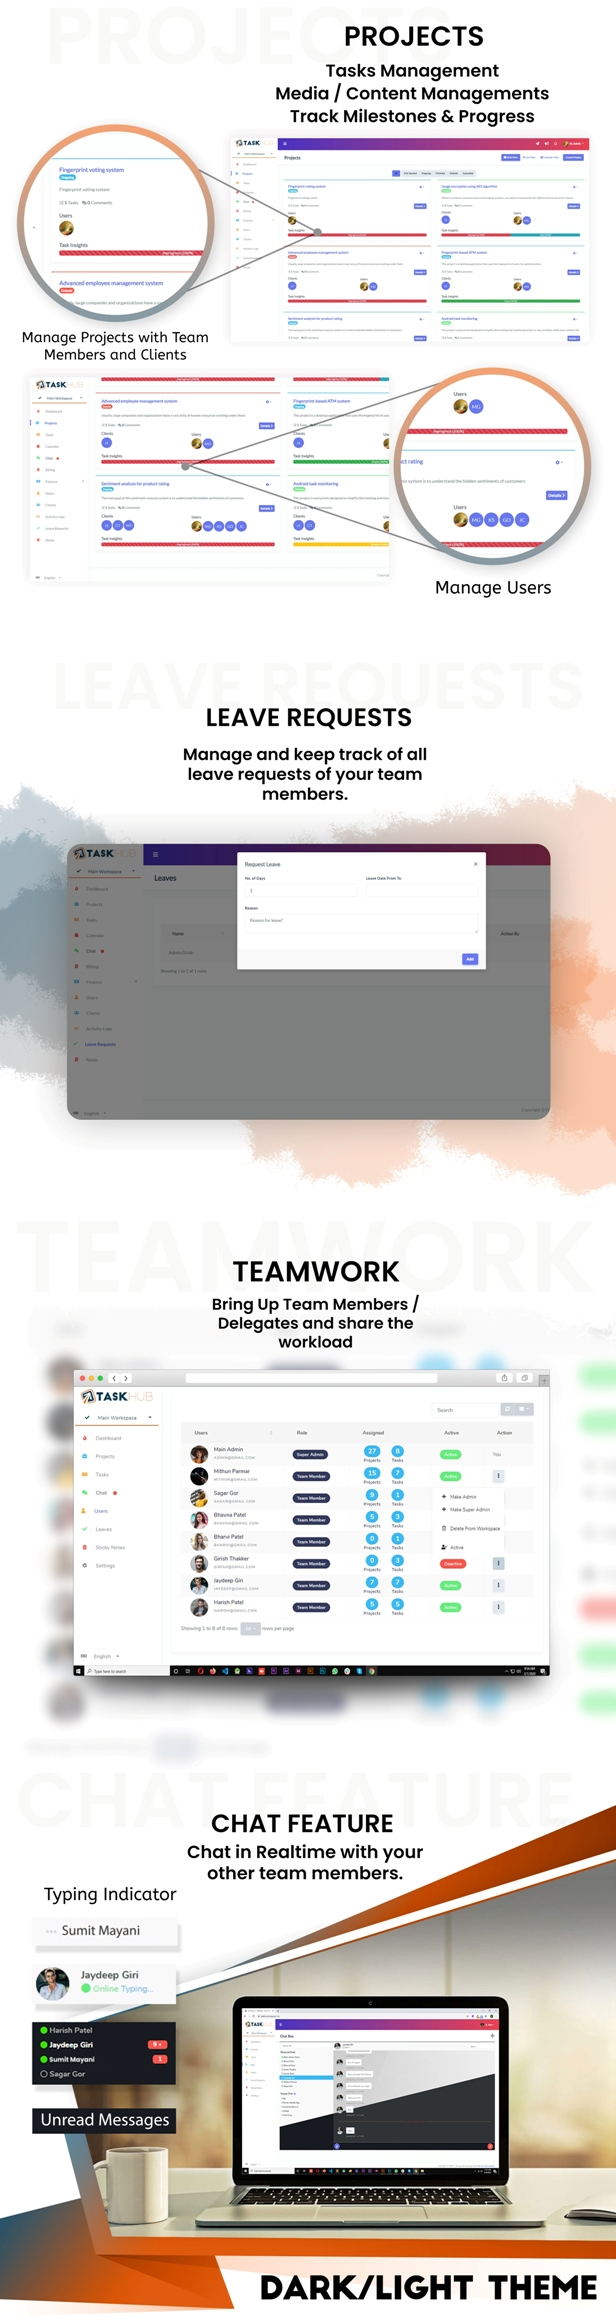 4 - projects-leave-requests-teamwork-chat - Taskhub SaaS - v1.0